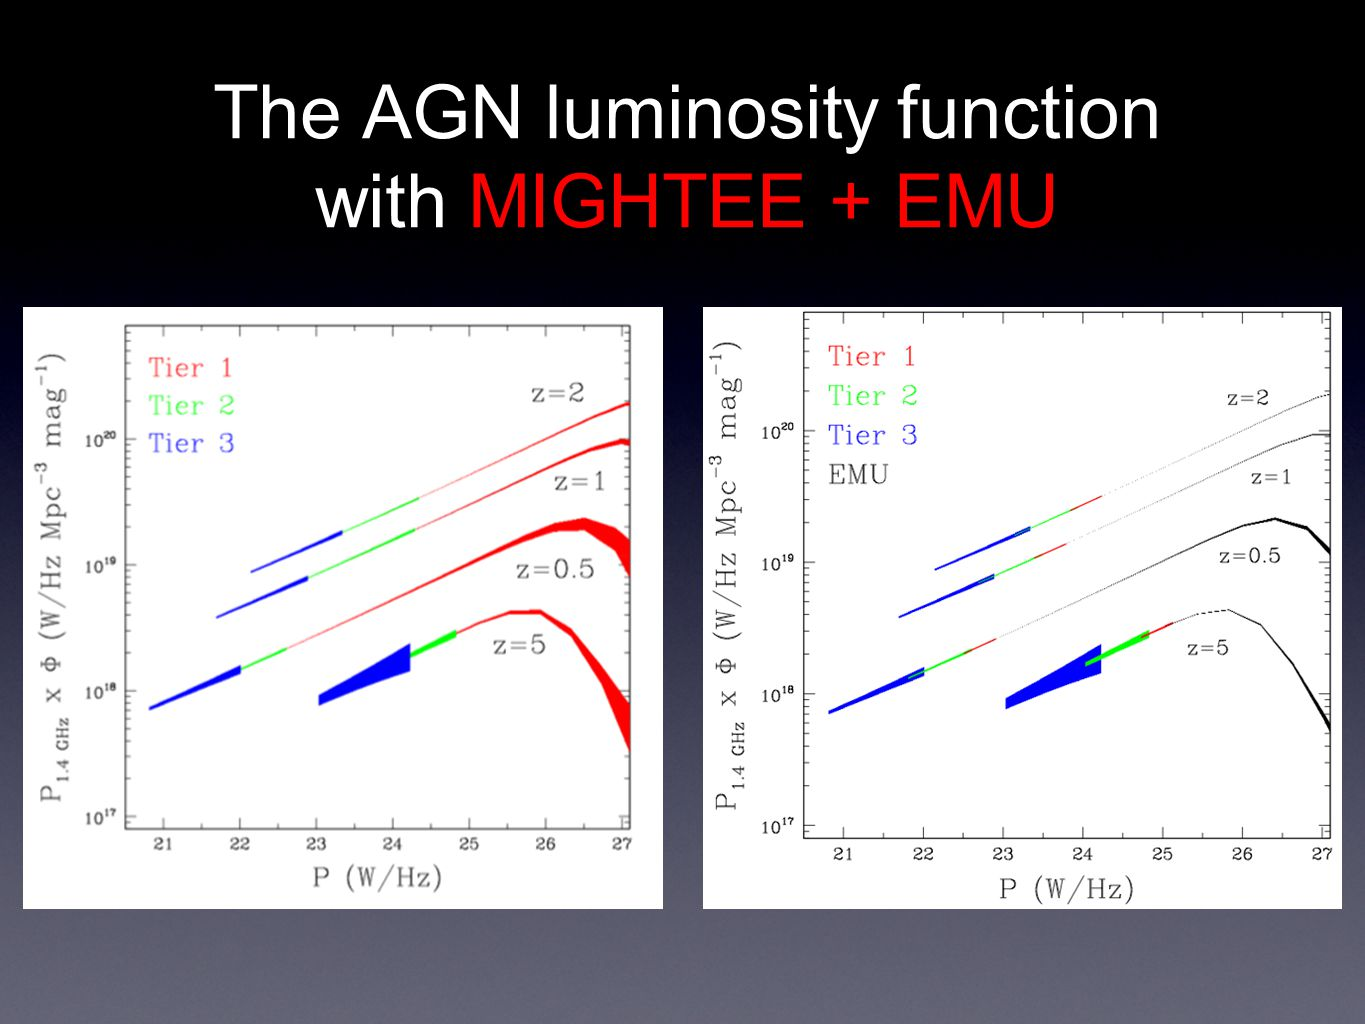 The AGN luminosity function with MIGHTEE + EMU